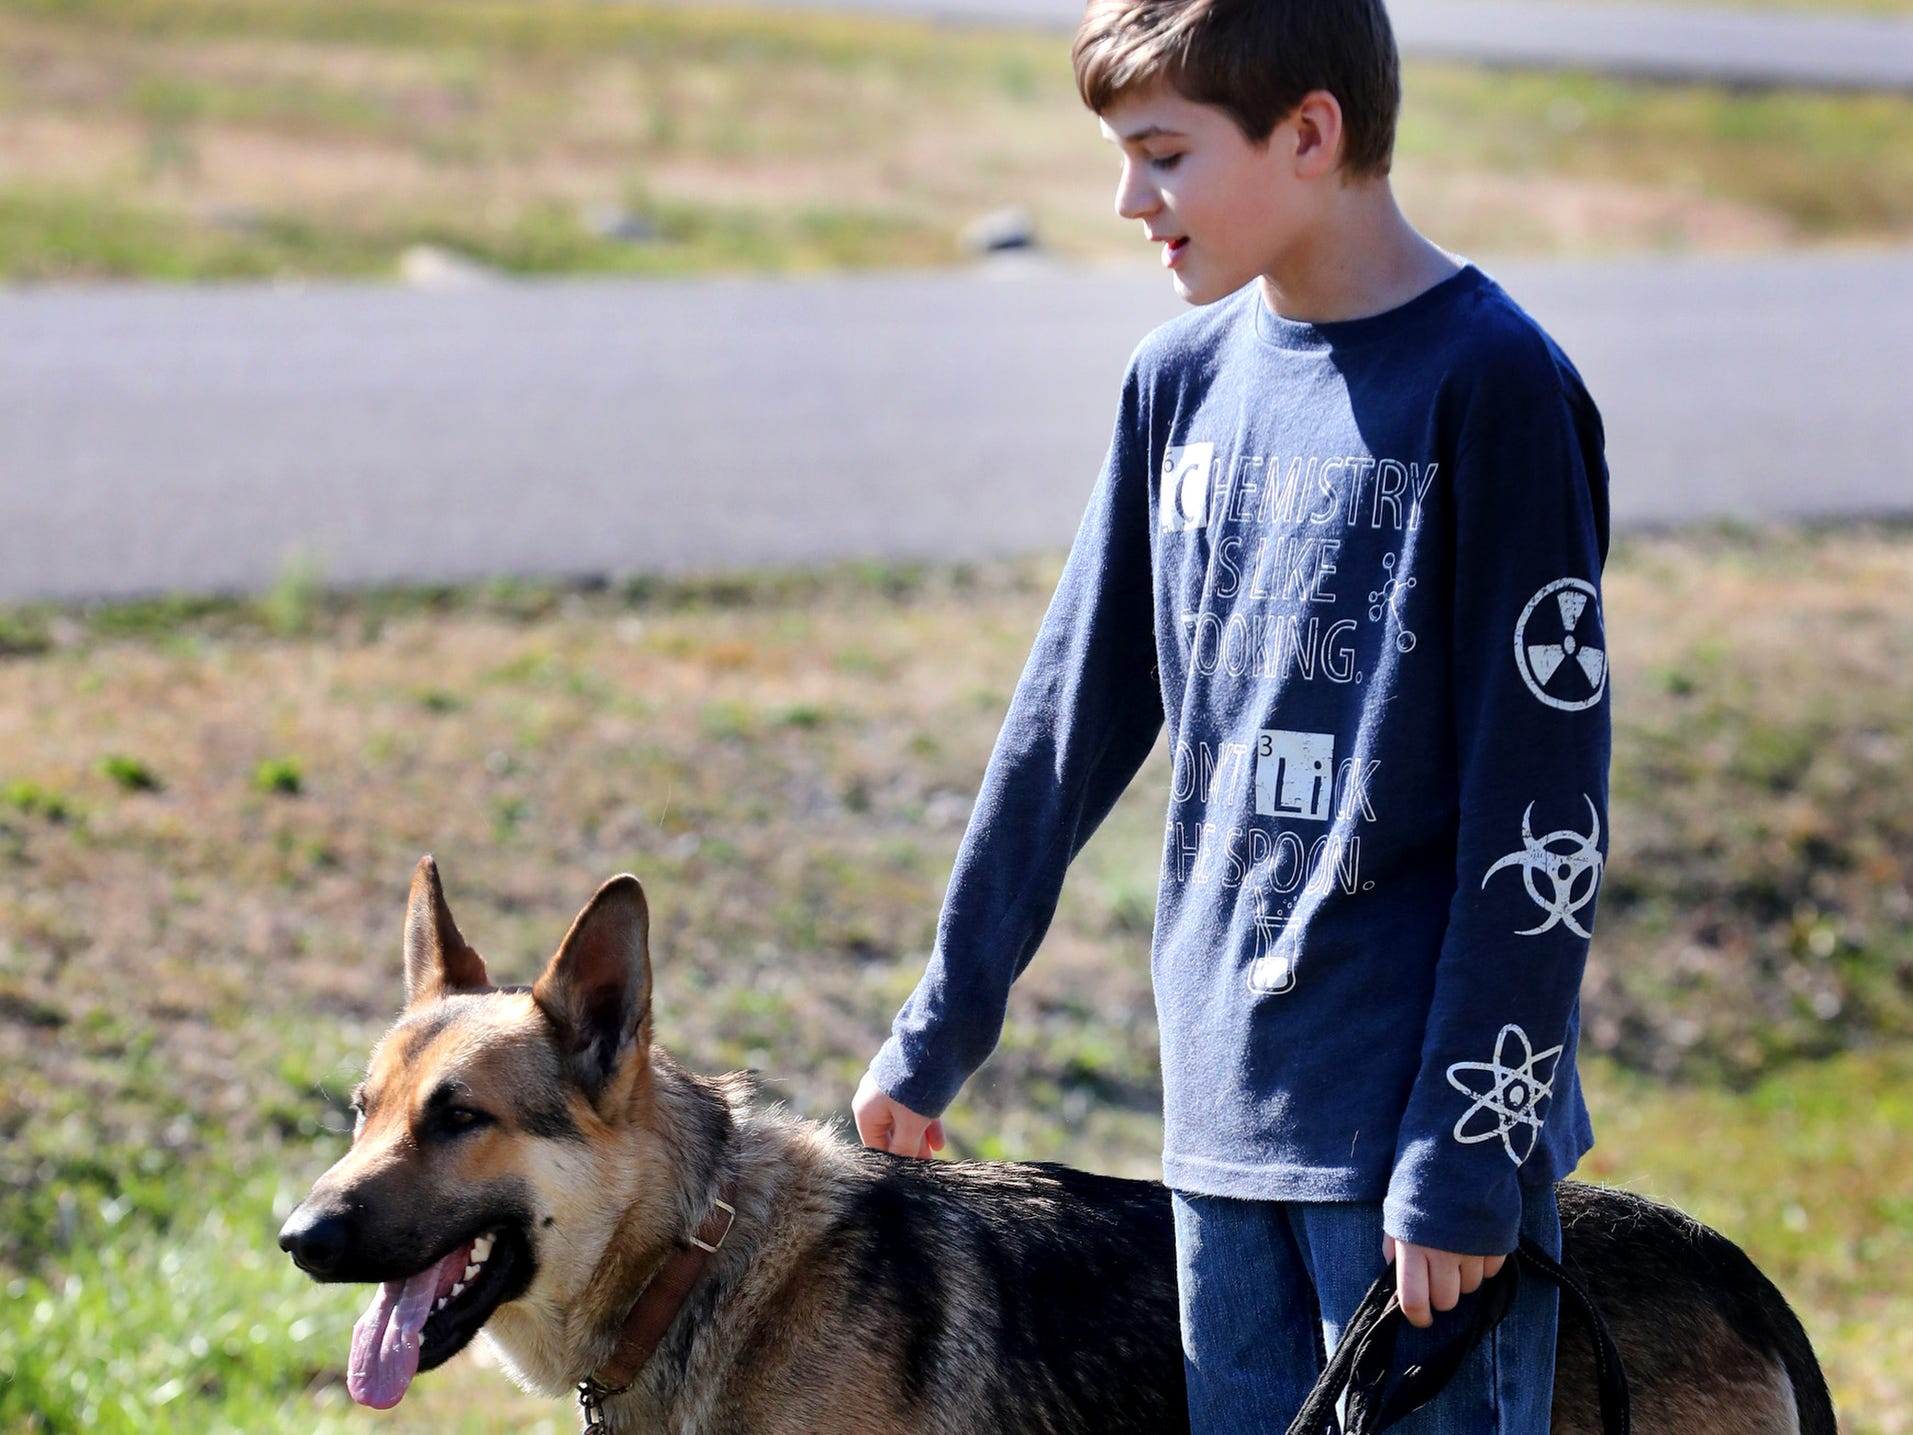 Justin White, 10, was reunited with his dog Goblin on Tuesday, March 19, 2019, after the dog was returned after being officially reported missing since March 10.